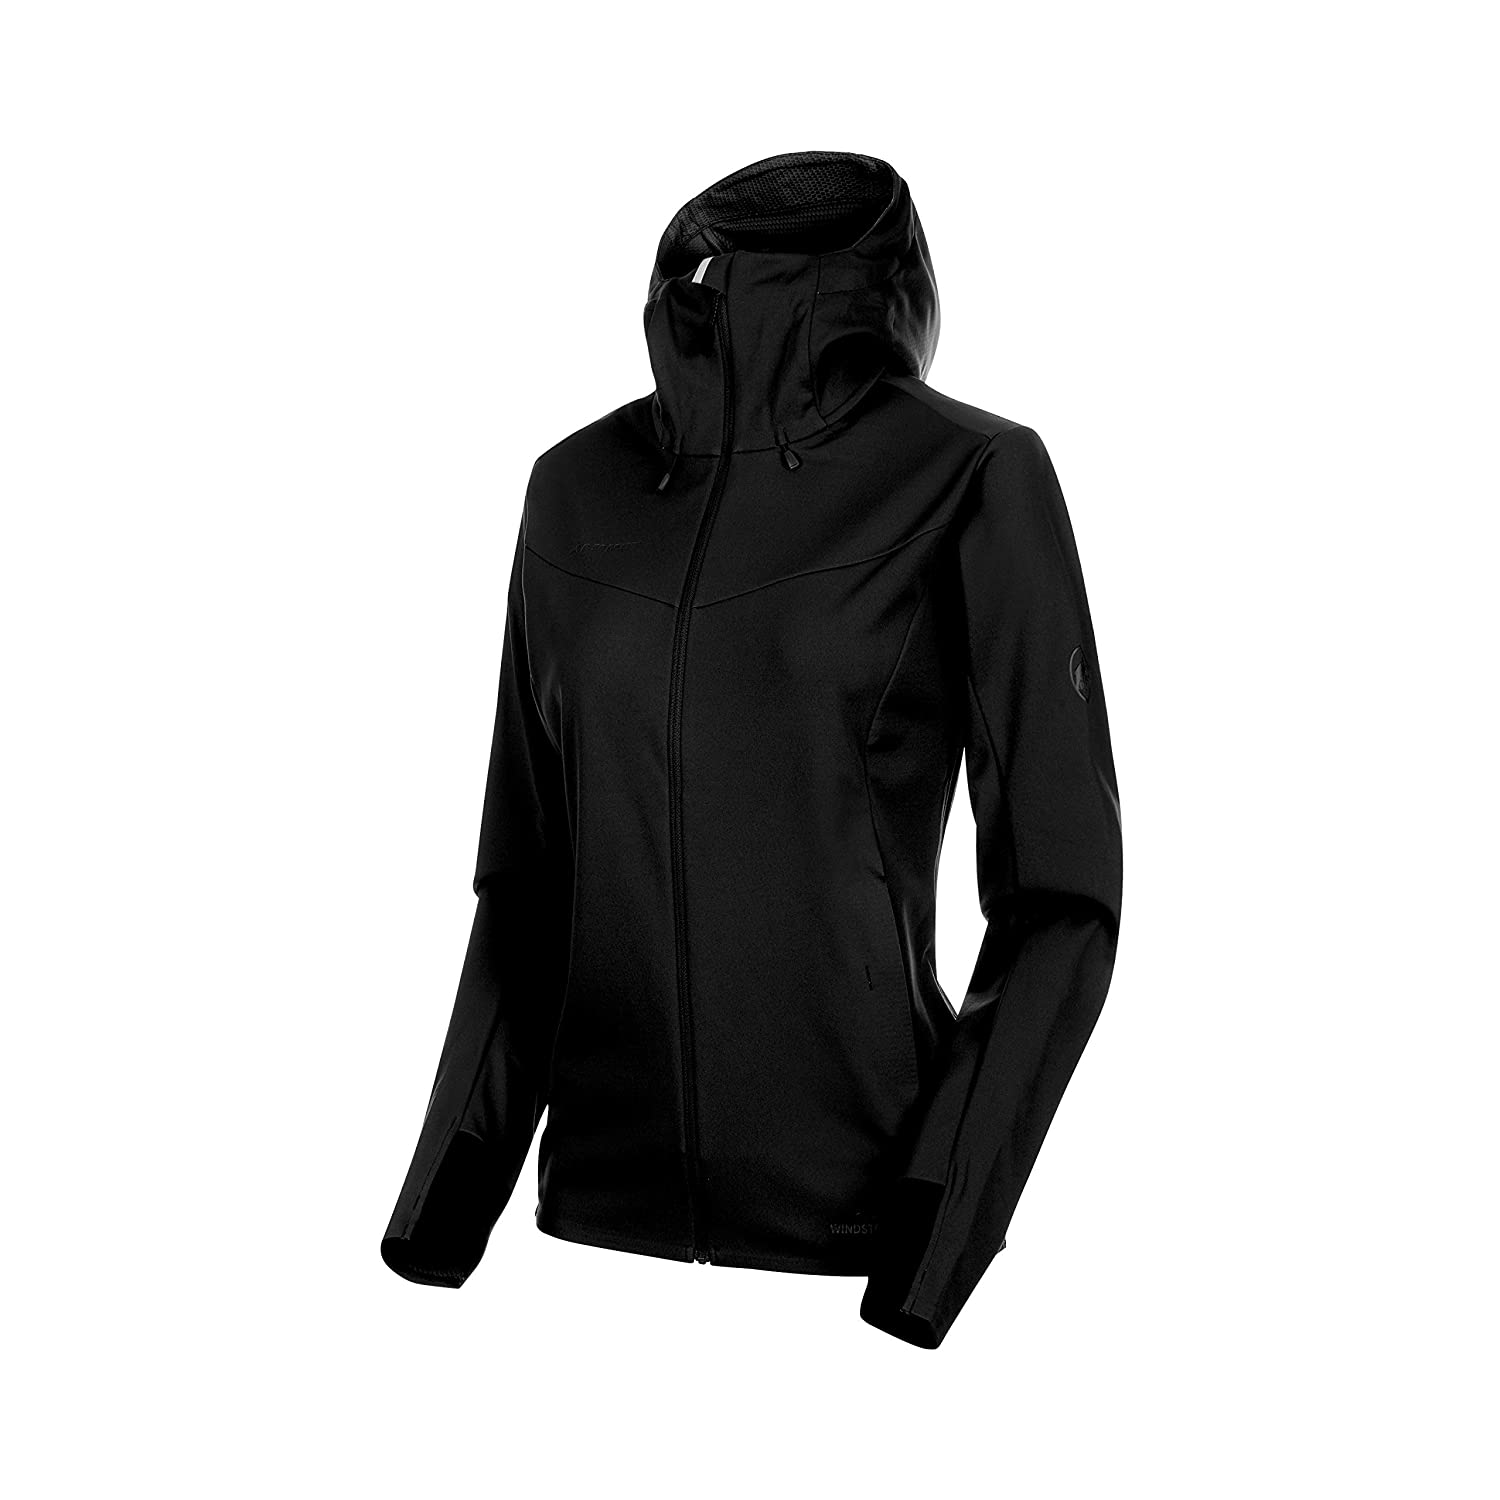 Mammut Damen Ultimat V Hooded Softshell-Jacke mit Kapuze